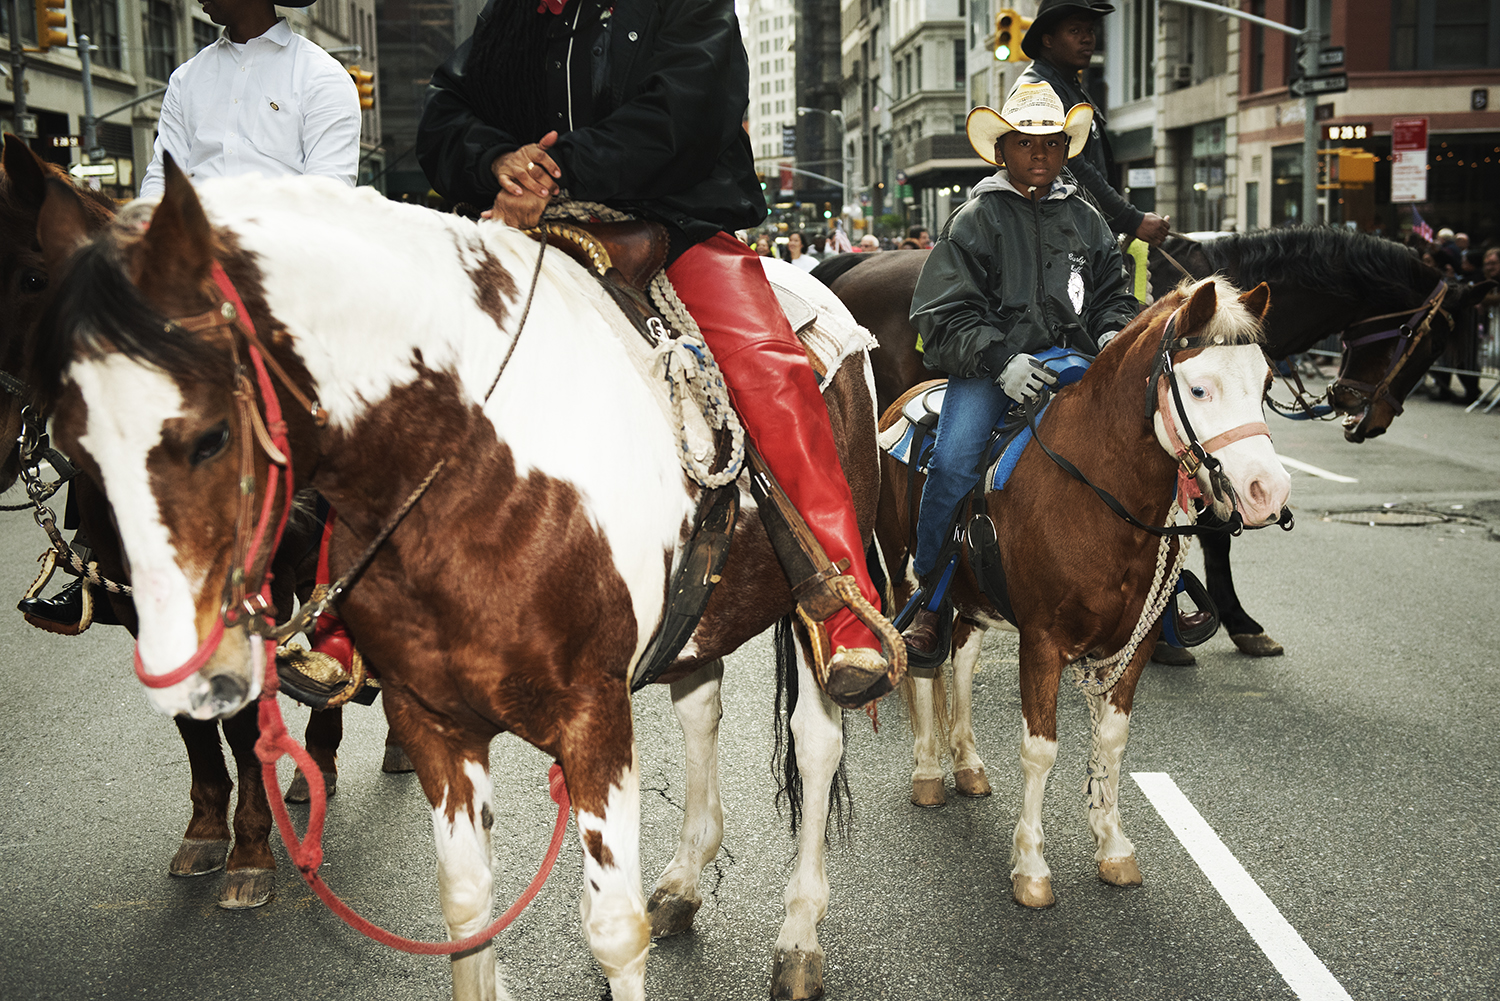 Cowboys in Manhattan, NY 2015   ©    Go Nakamura     photography